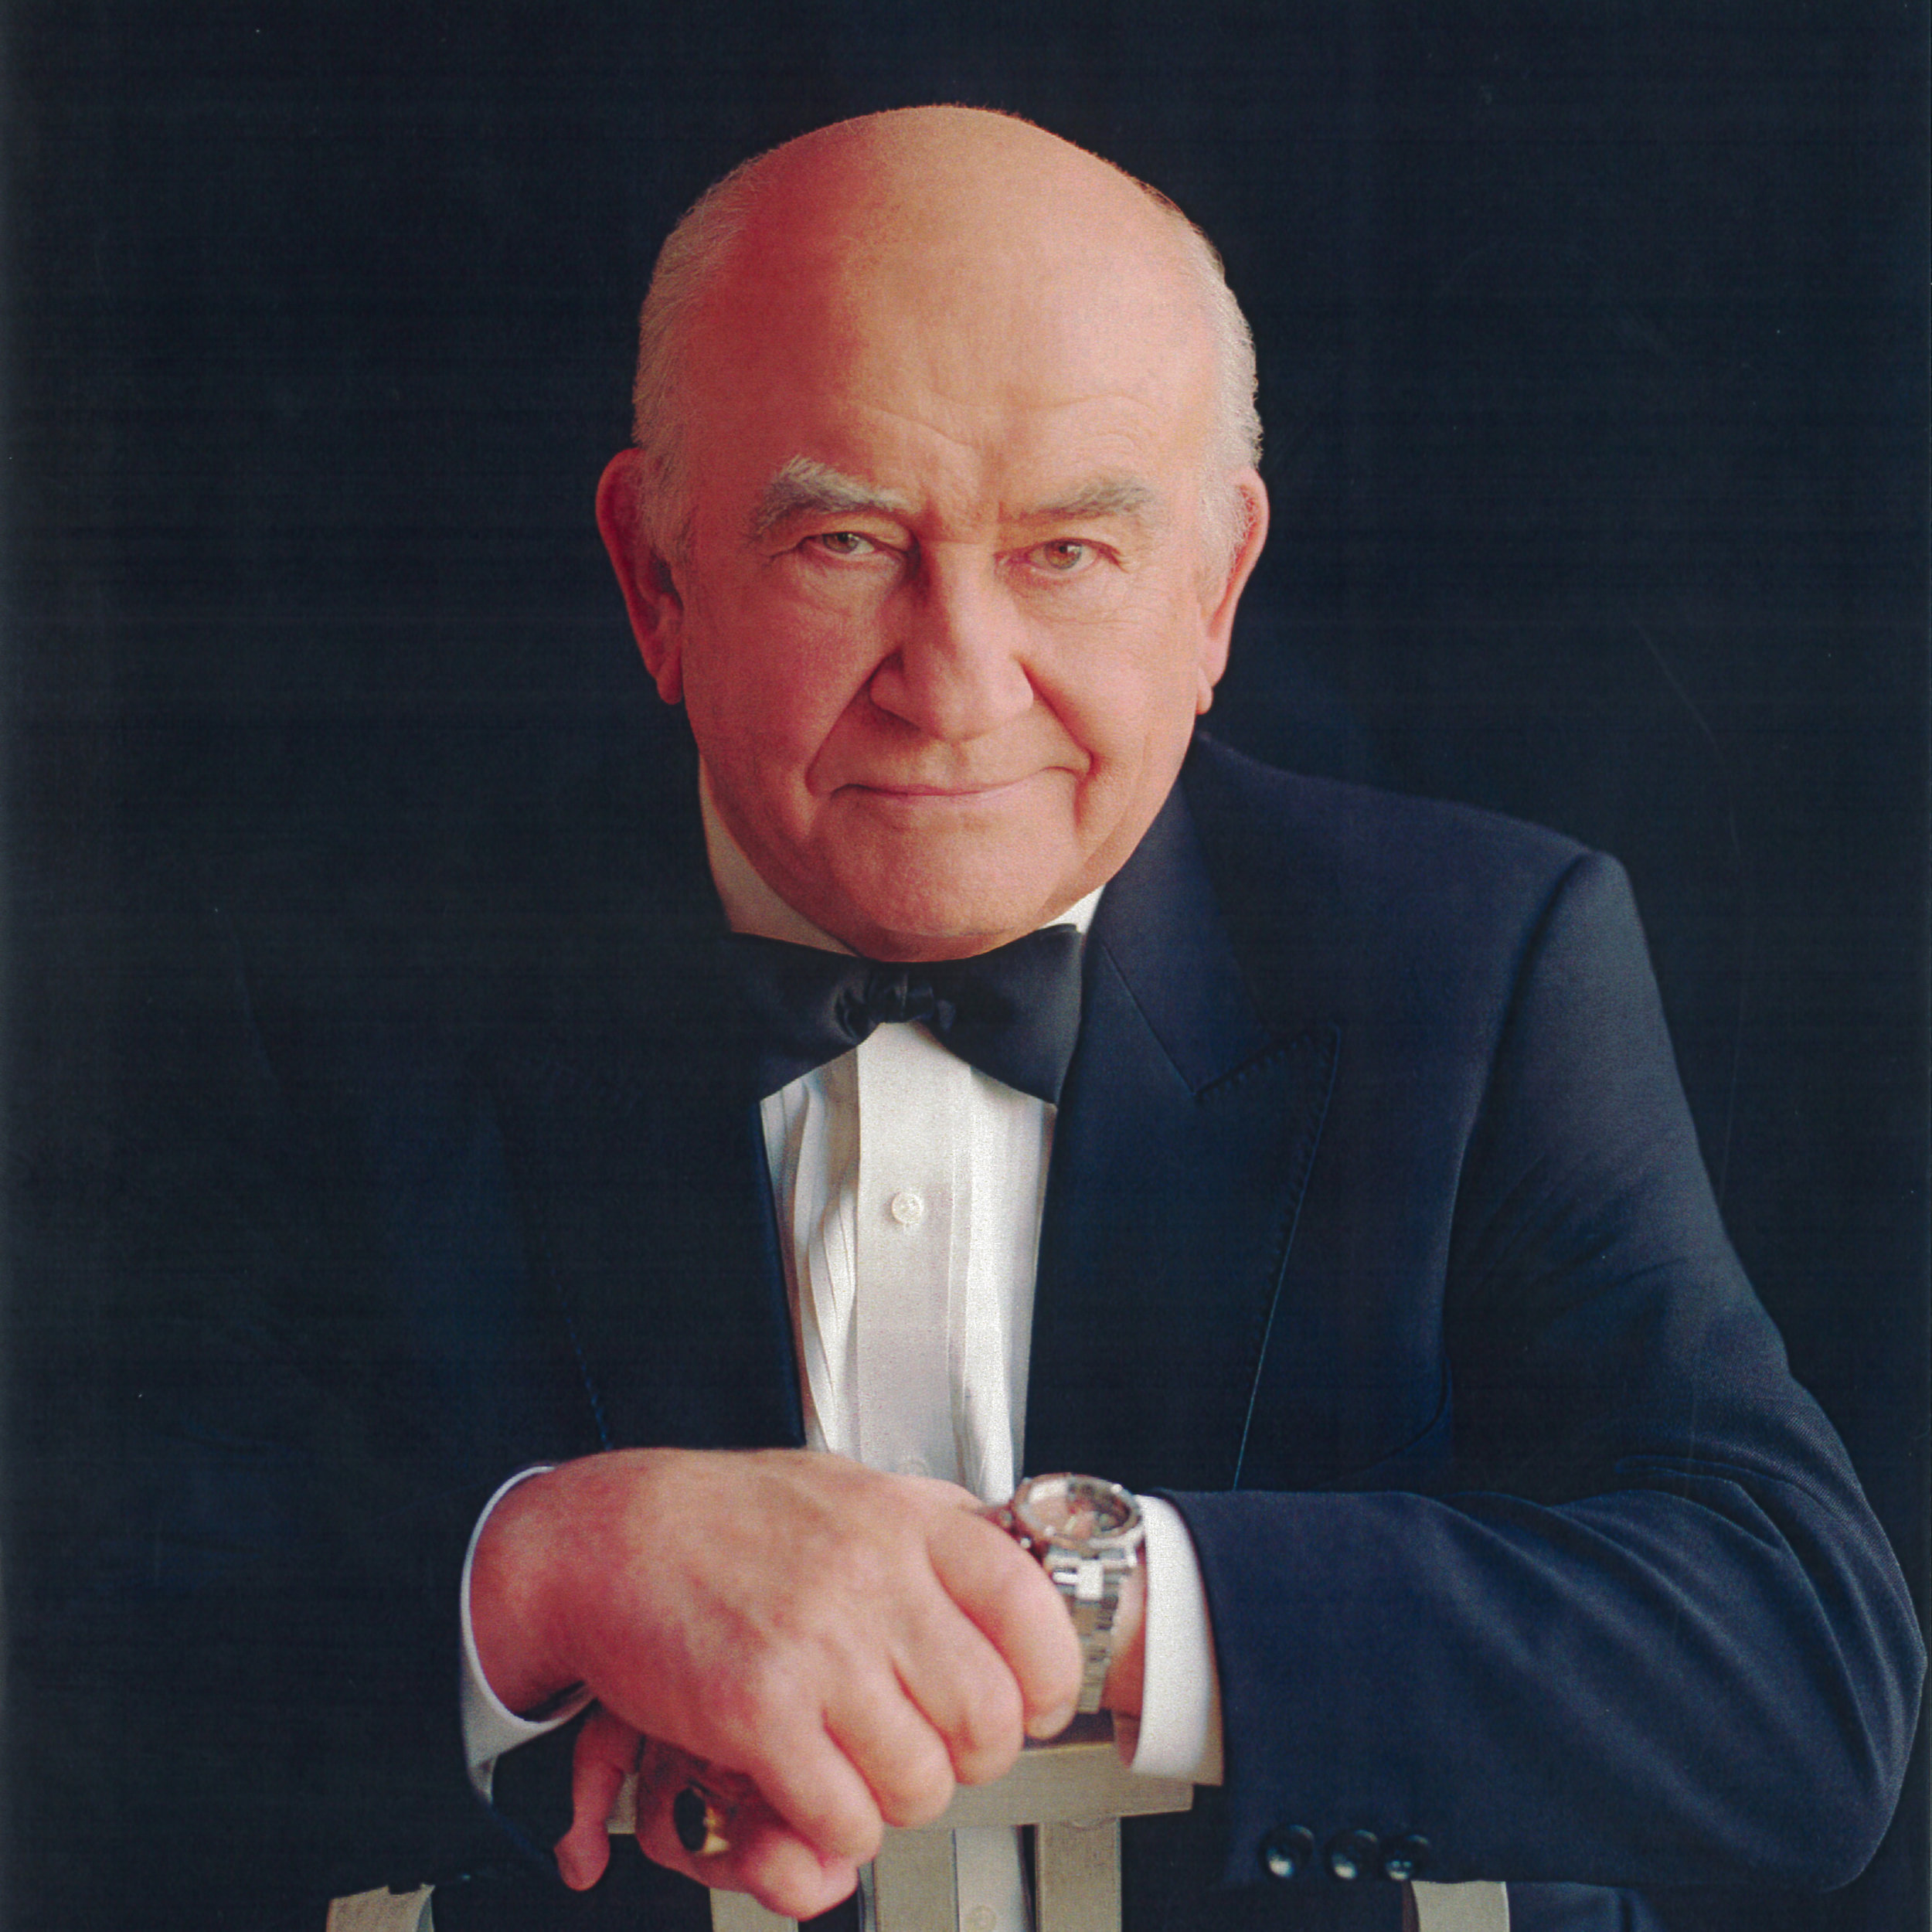 Ed Asner - 2017 Lifetime Achievement Award for Outstanding Contribution to Film/TVVersatile, committed, eloquent and talented are all adjectives that describe actor/activist and 8-Time Emmy Award-winning actor ED ASNER starred as Carl Fredricksen in Pixar's 2009 box-office-hit Oscar winning Best Picture UP!Read more...